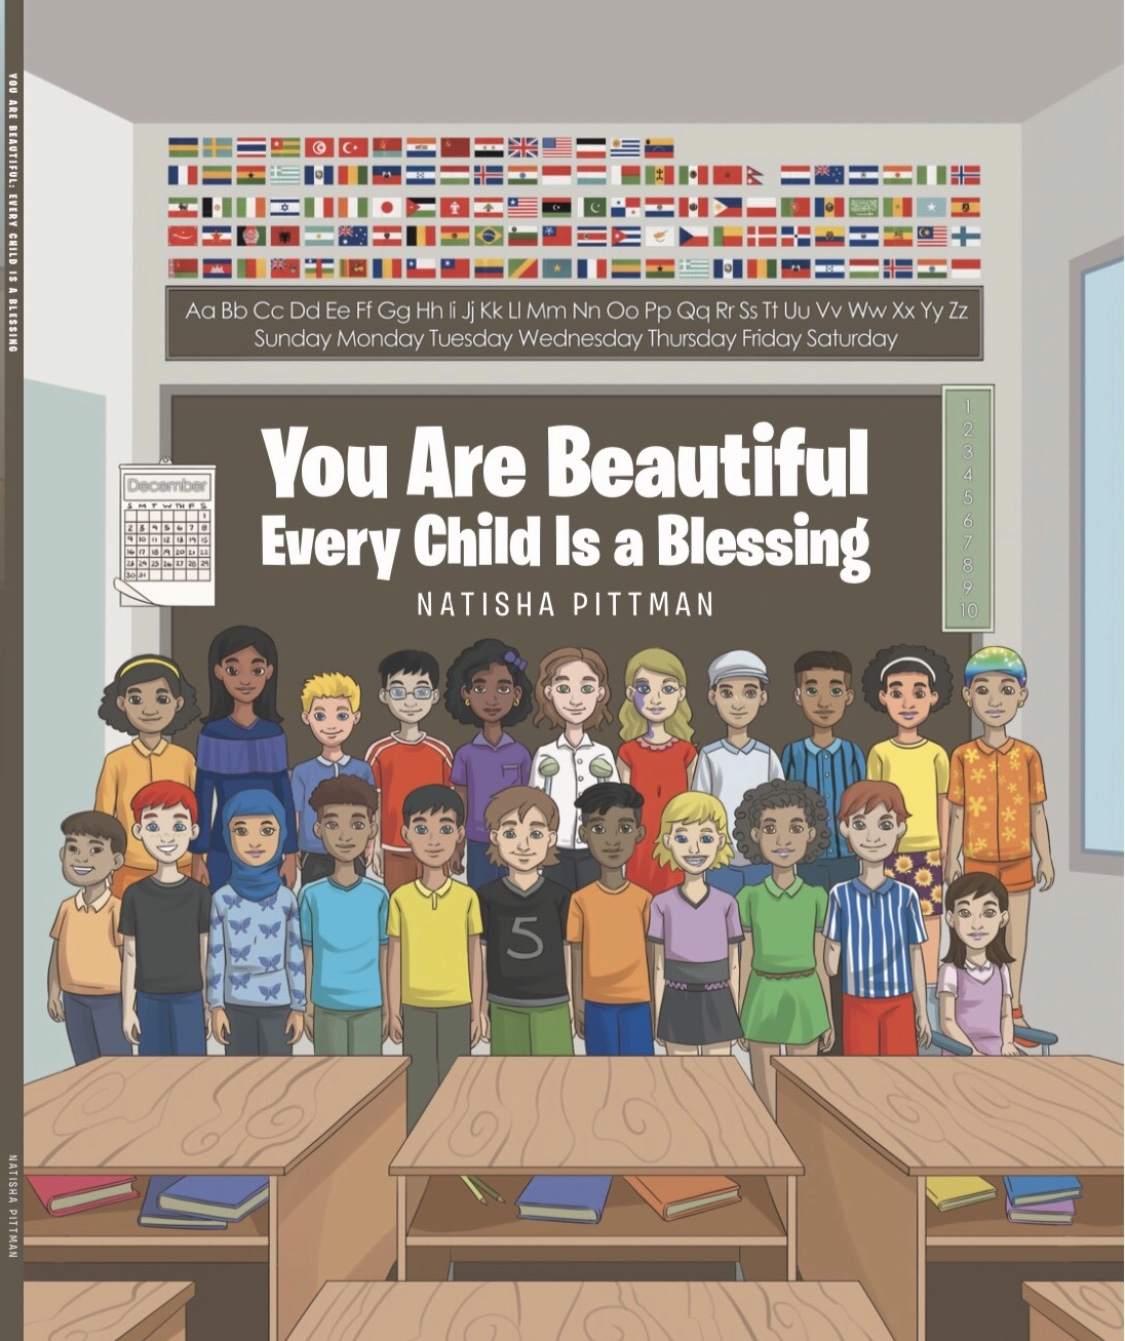 You are Beautiful Every Child is a Blessing